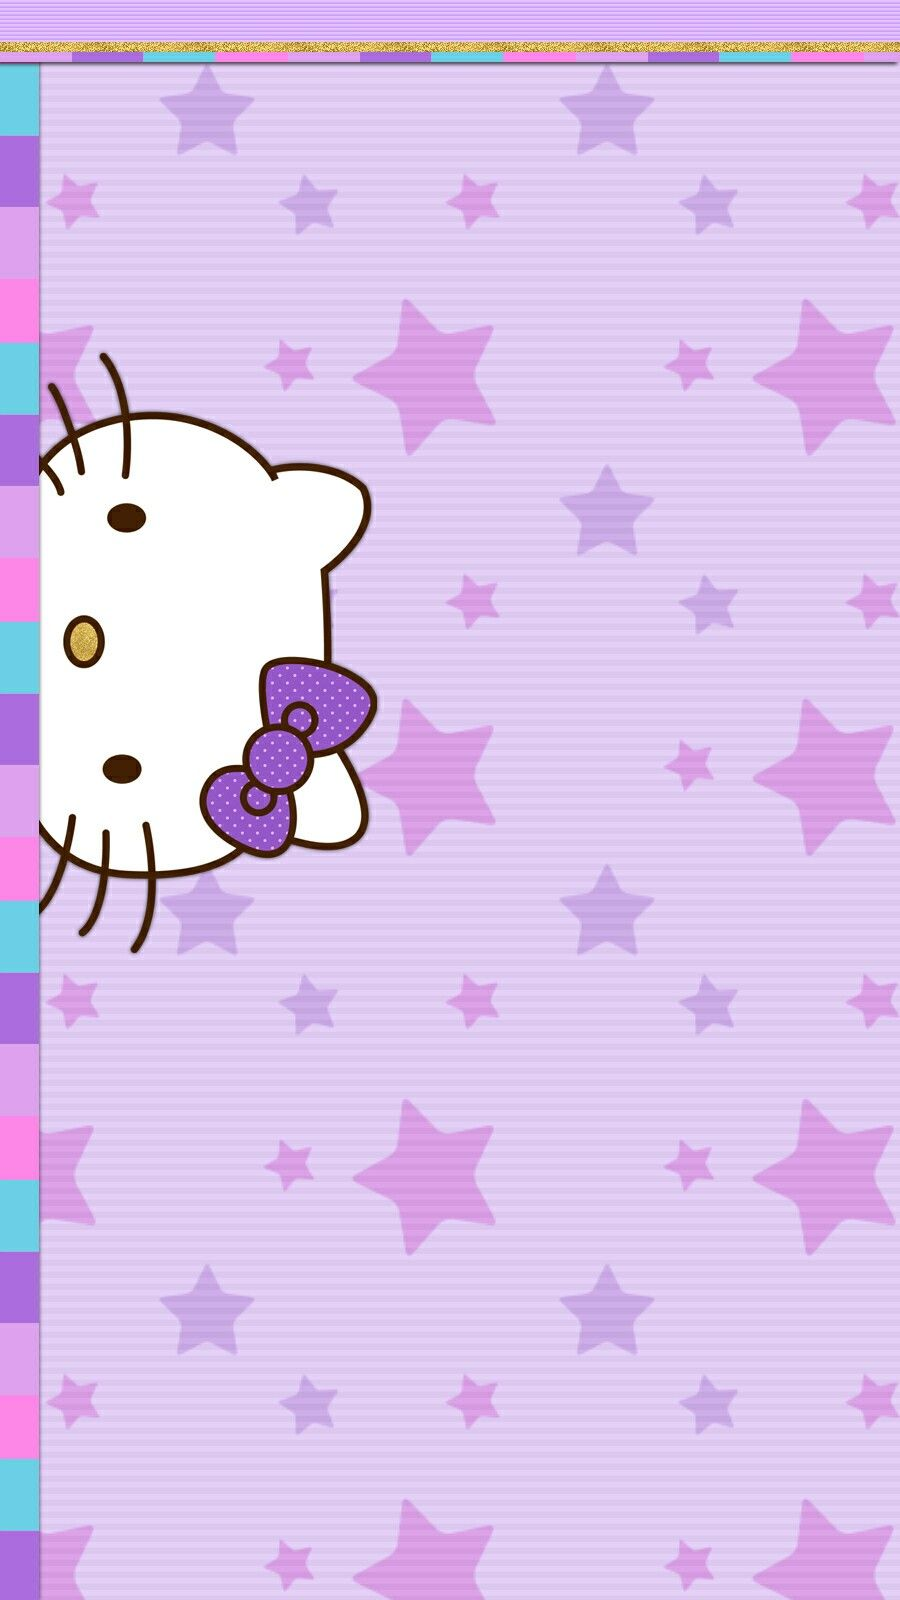 Hk Wallpaper Iphone Hello Kitty Wallpaper Hello Kitty Pictures Hello Kitty Iphone Wallpaper